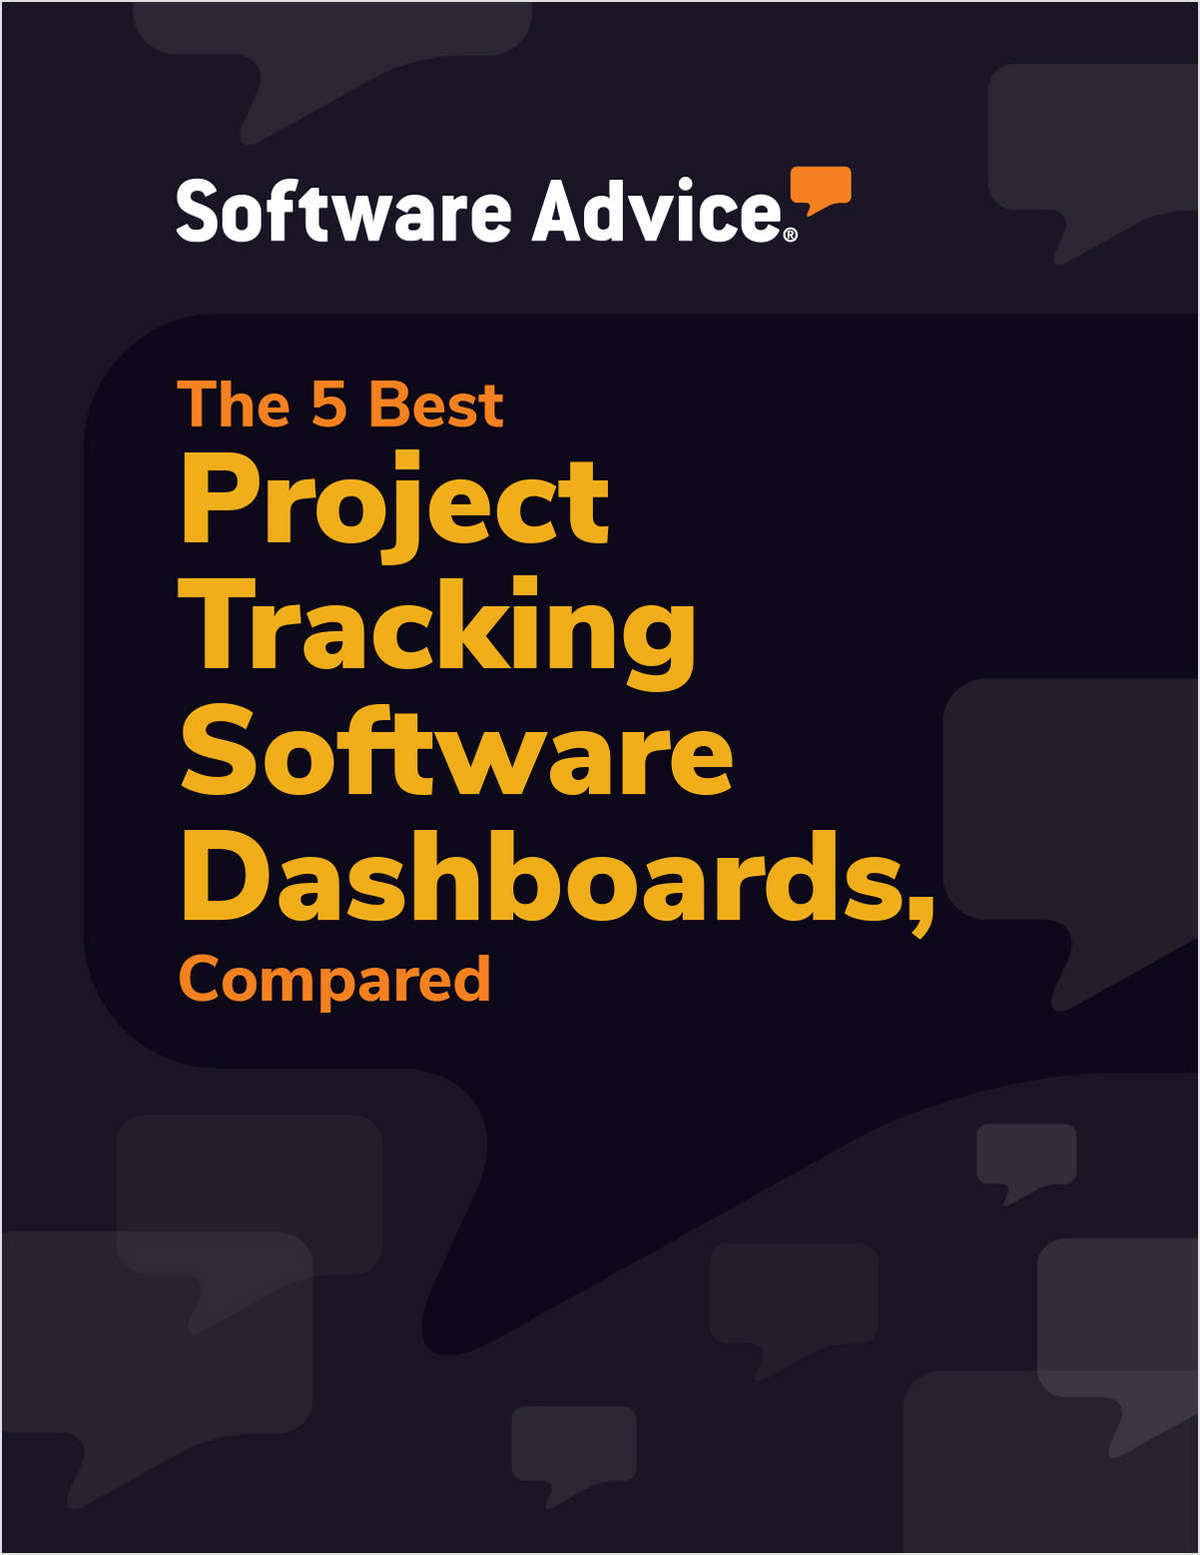 The 5 Best Project Tracking Software Dashboards, Compared